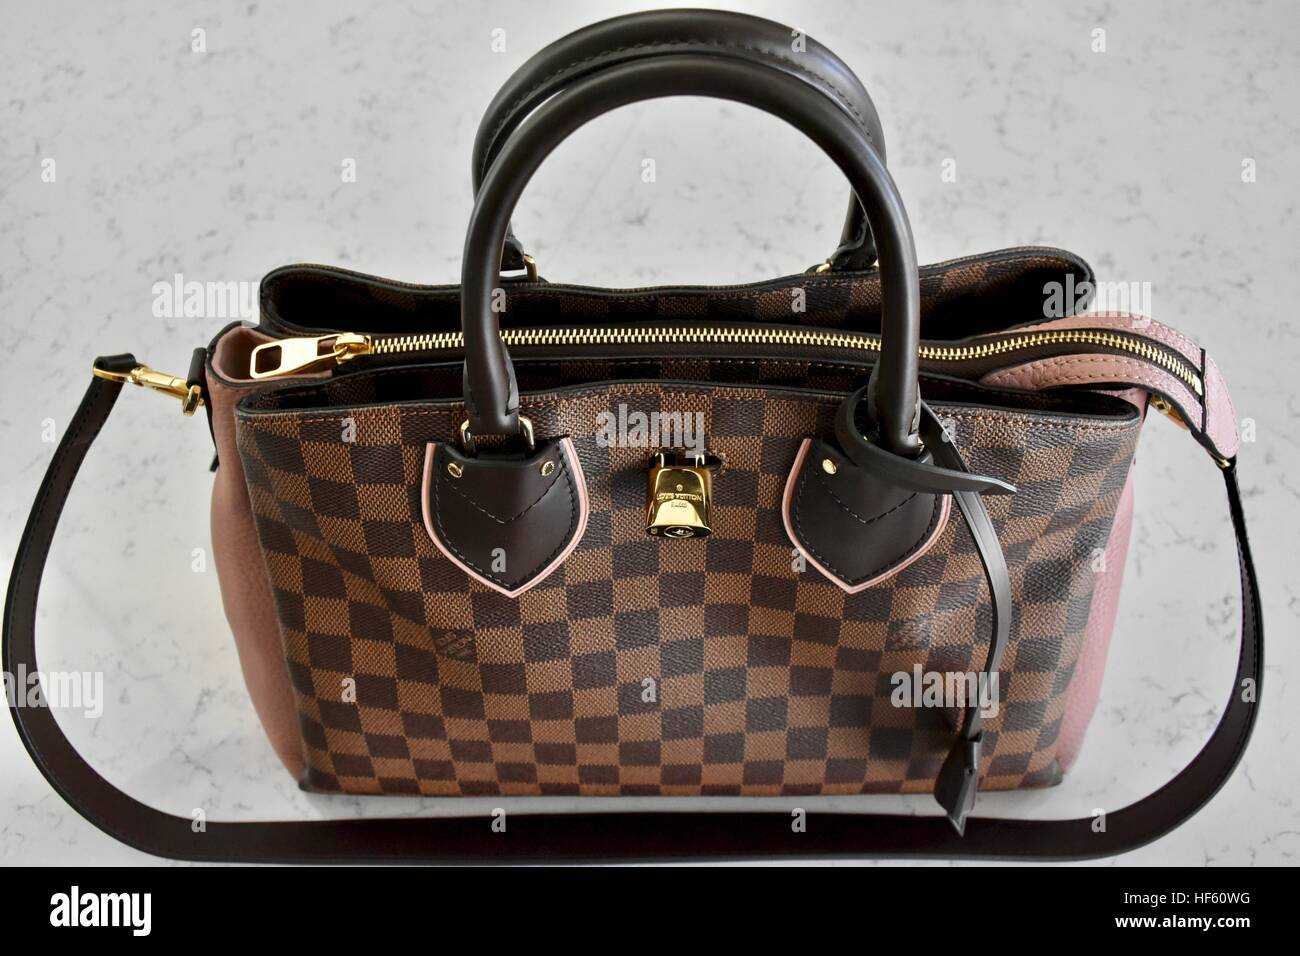 bf80ca493b38 A Louis Vuitton handbag displayed on a white carrera marble background